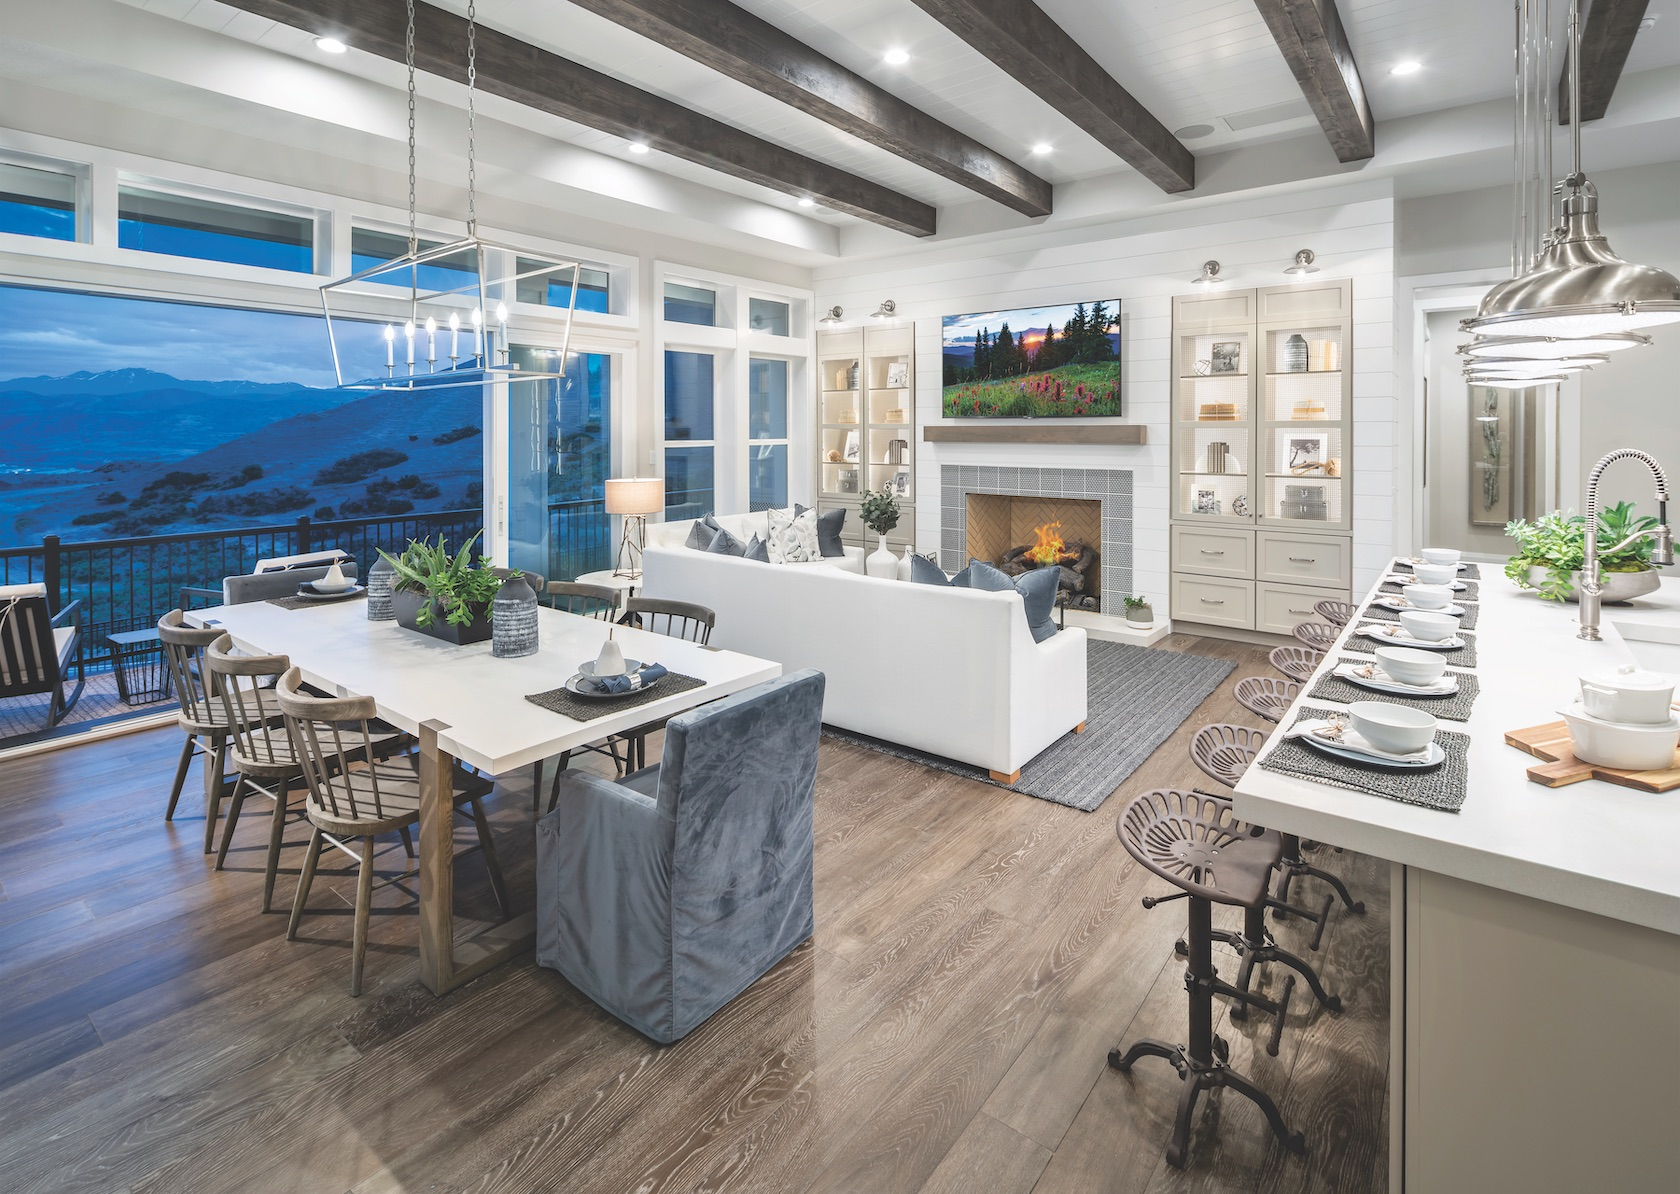 Utah home with great room with mountain view, kitchen, and beamed ceilings.